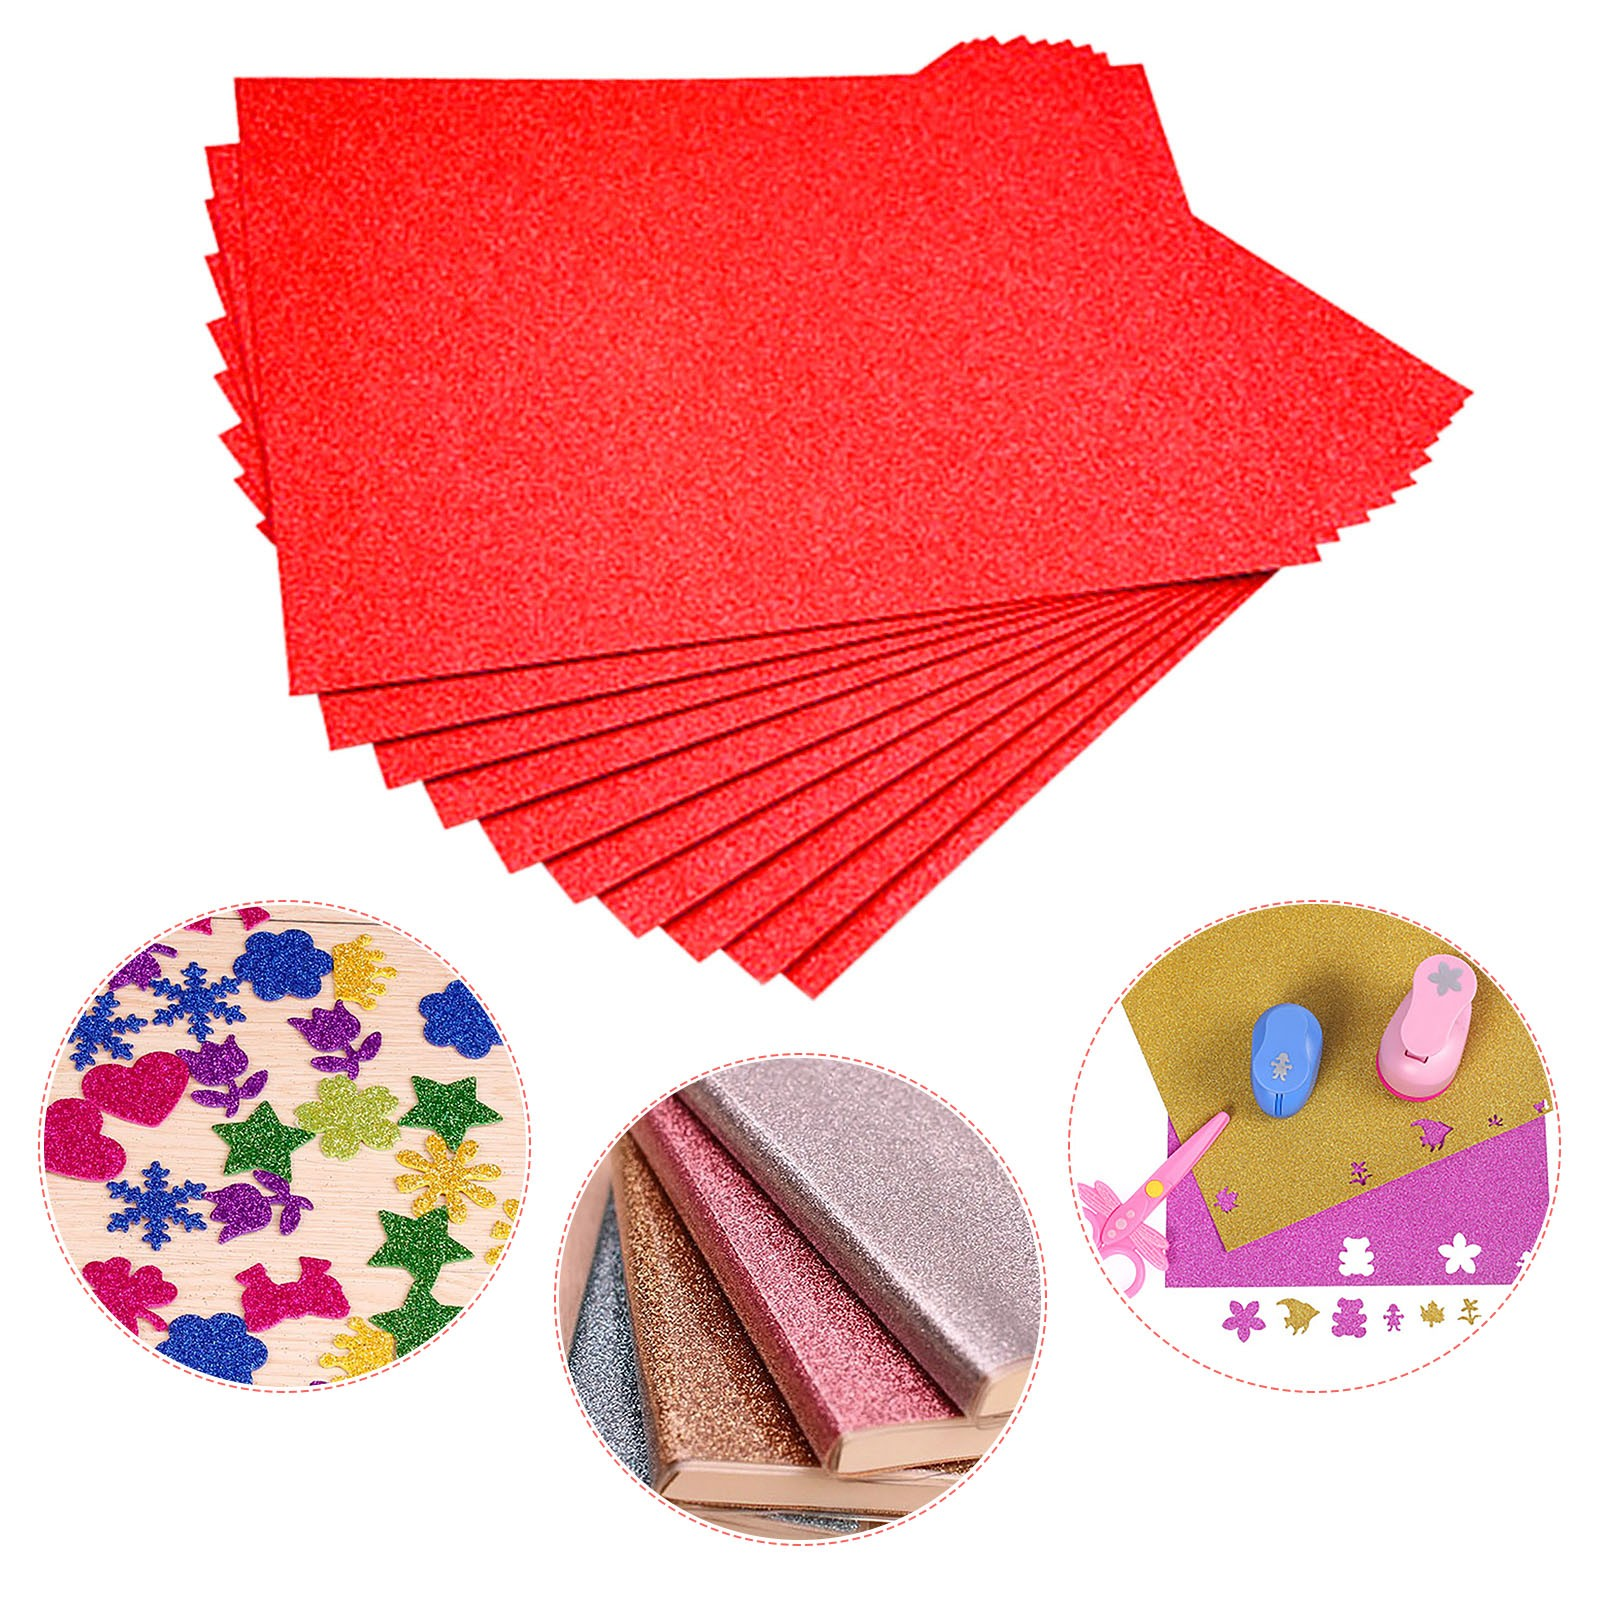 Flash Card Paper Flash Shiny Craft Paper Advanced A4 Flash Paper A variety of rainbow colors Glitter Cardstock No Adhesive 2021